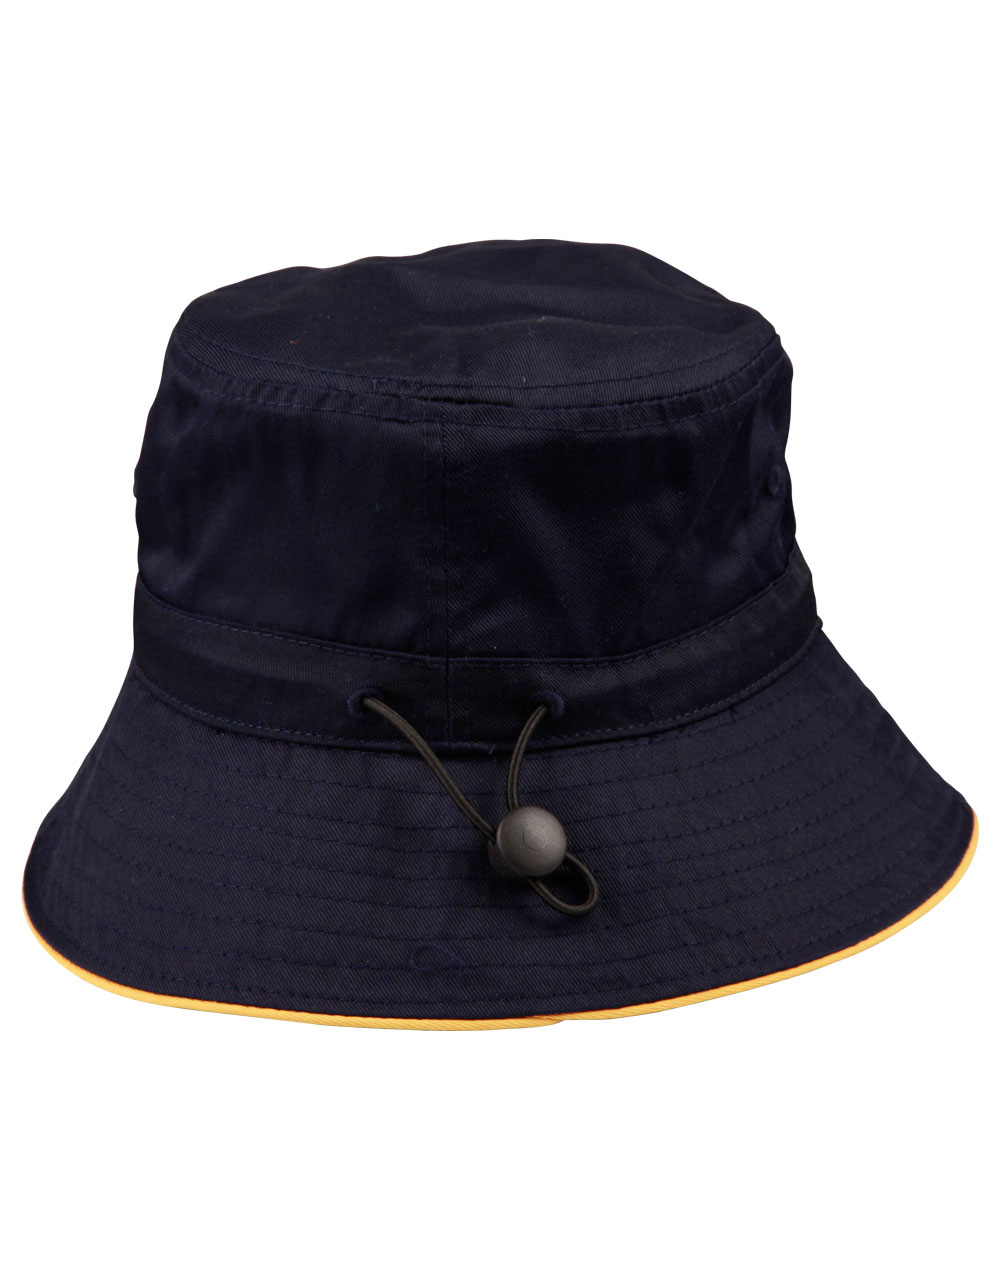 https://s3-ap-southeast-1.amazonaws.com/ws-imgs/CAPS/H1033_Navy.Gold_Back.jpg